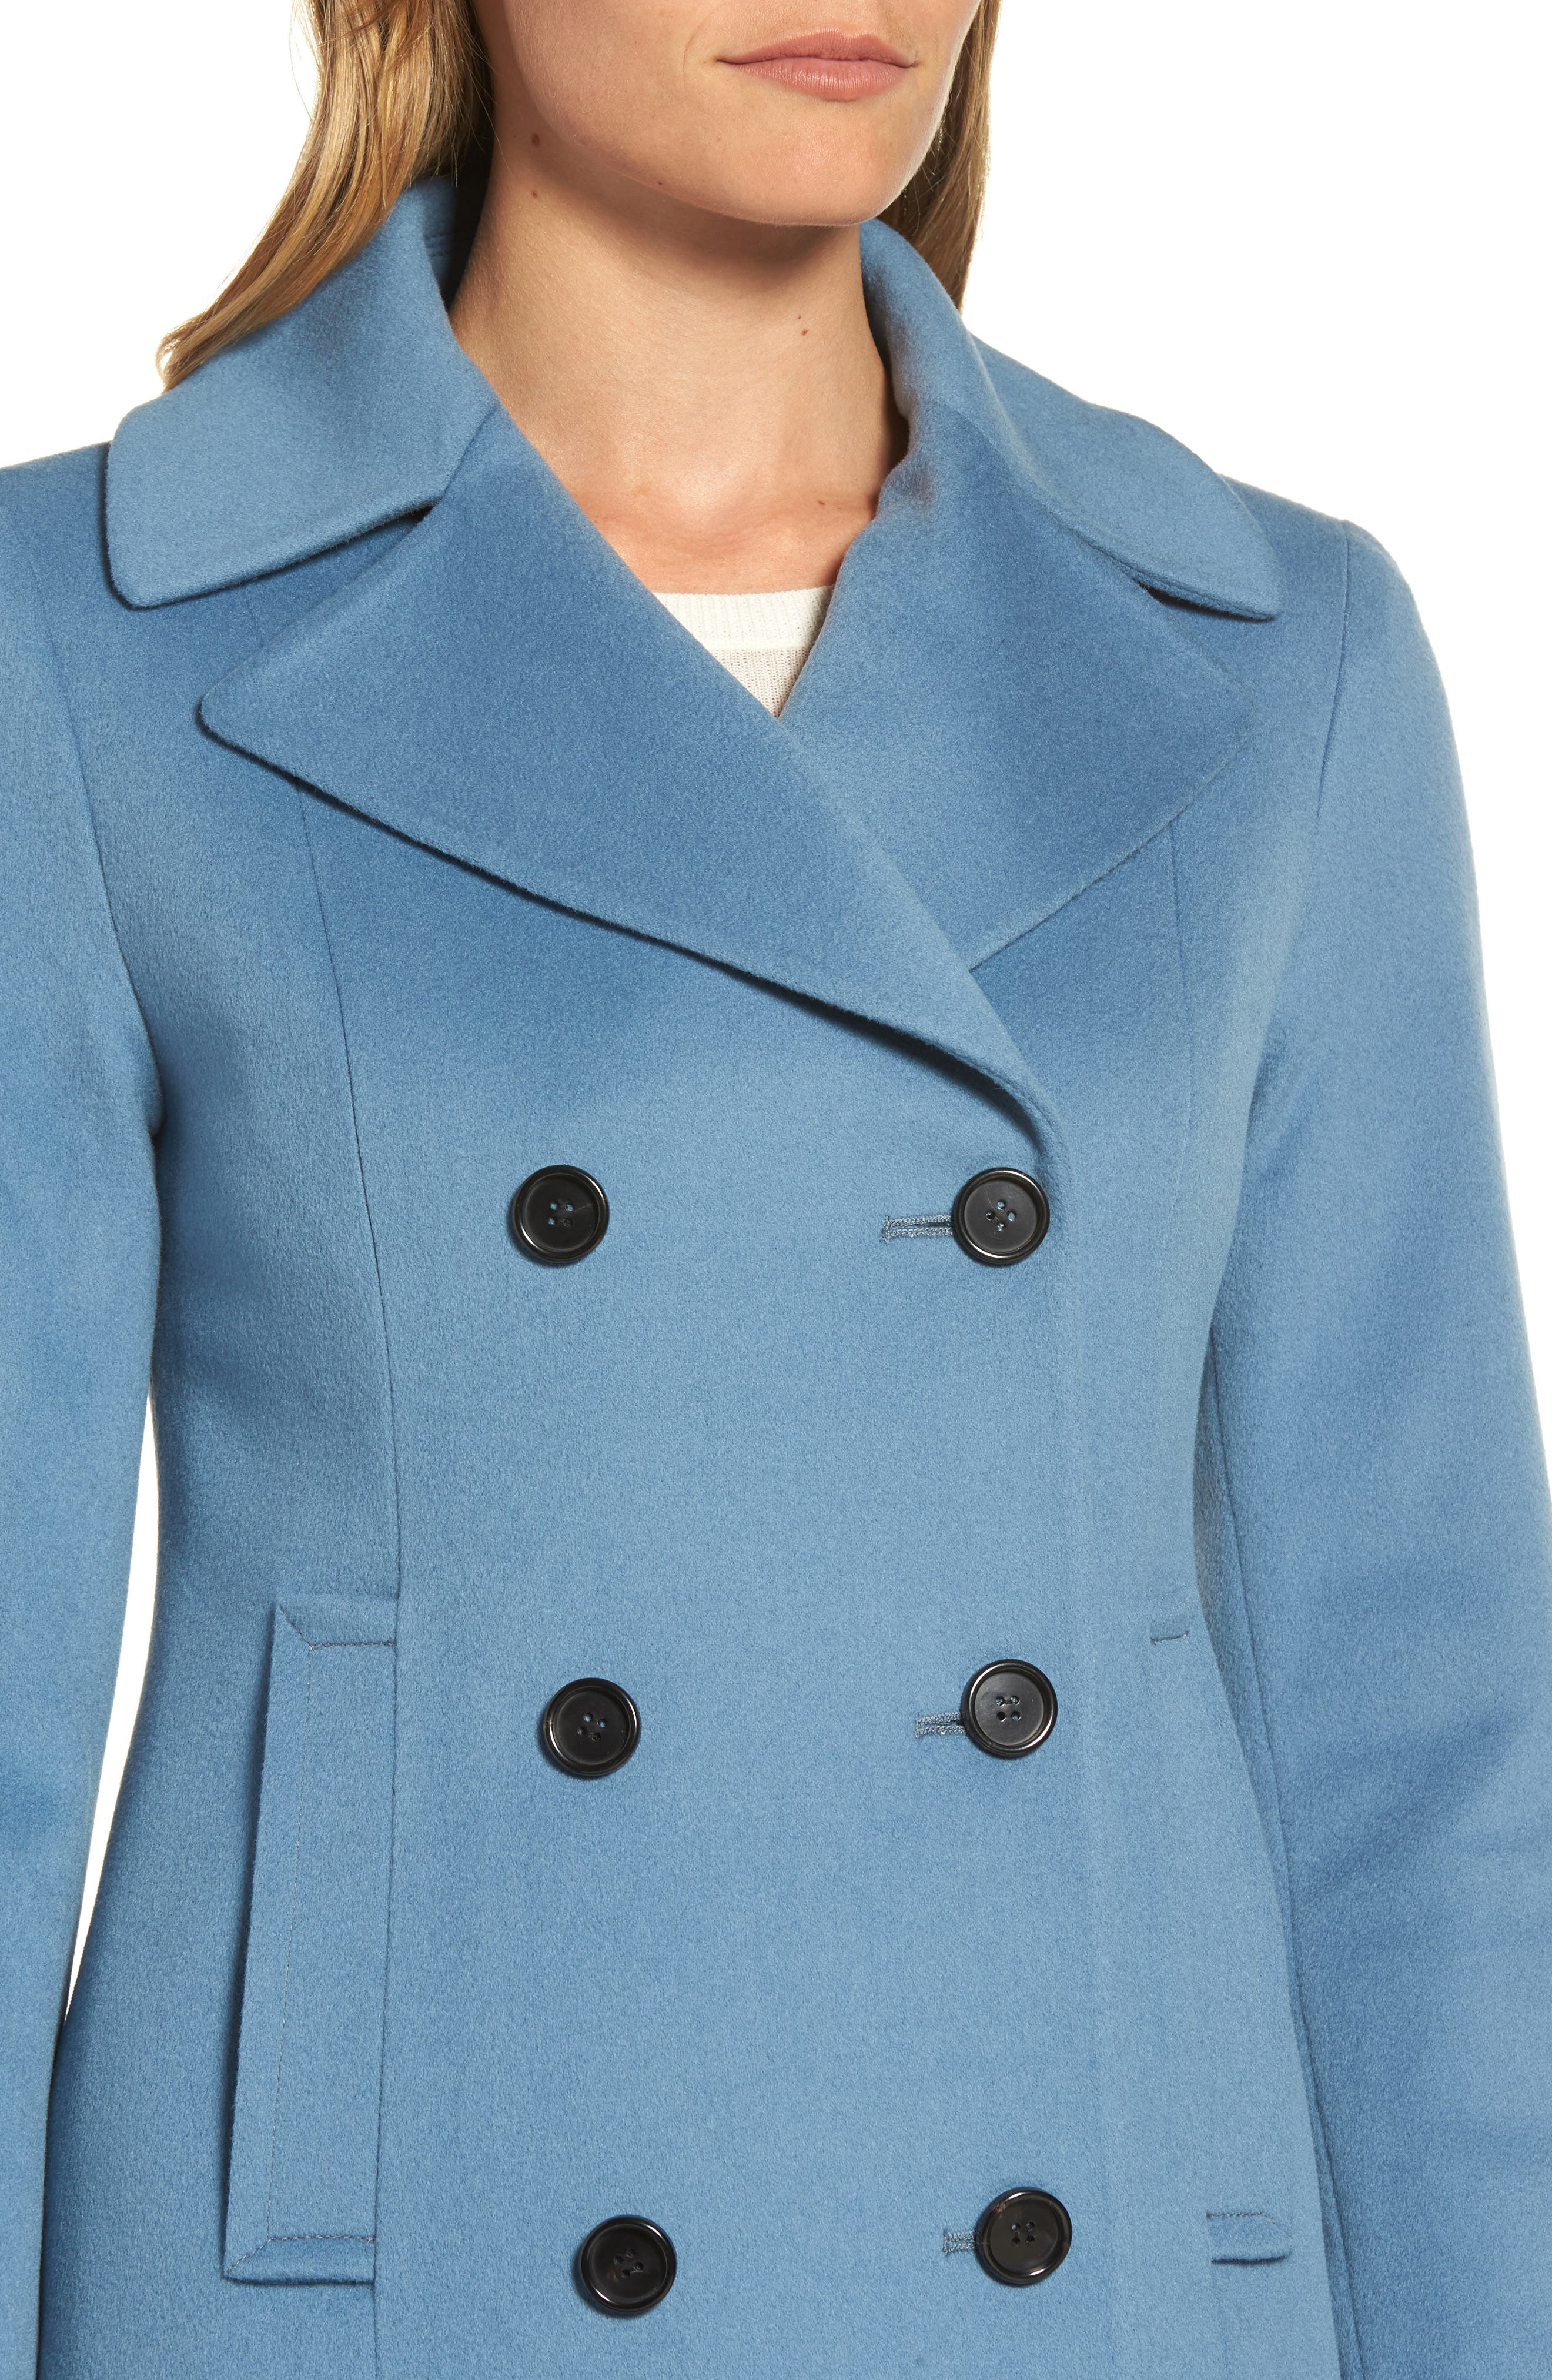 Double Breasted Loro Piana Wool Coat,                             Alternate thumbnail 4, color,                             Cornflower